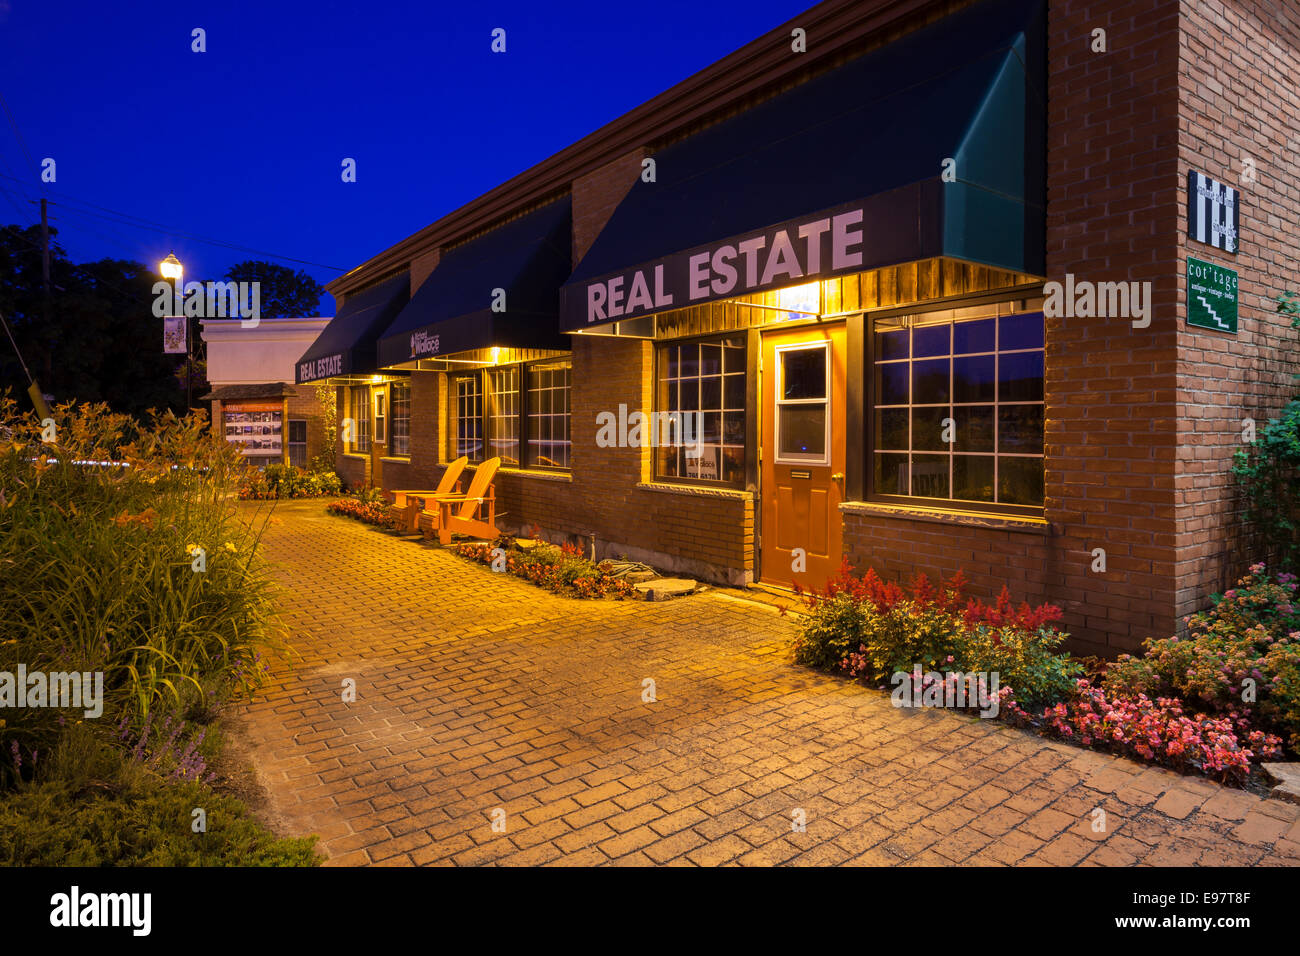 Richard Wallace Real Estate in downtown Port Carling at dusk. Ontario, Canada. - Stock Image